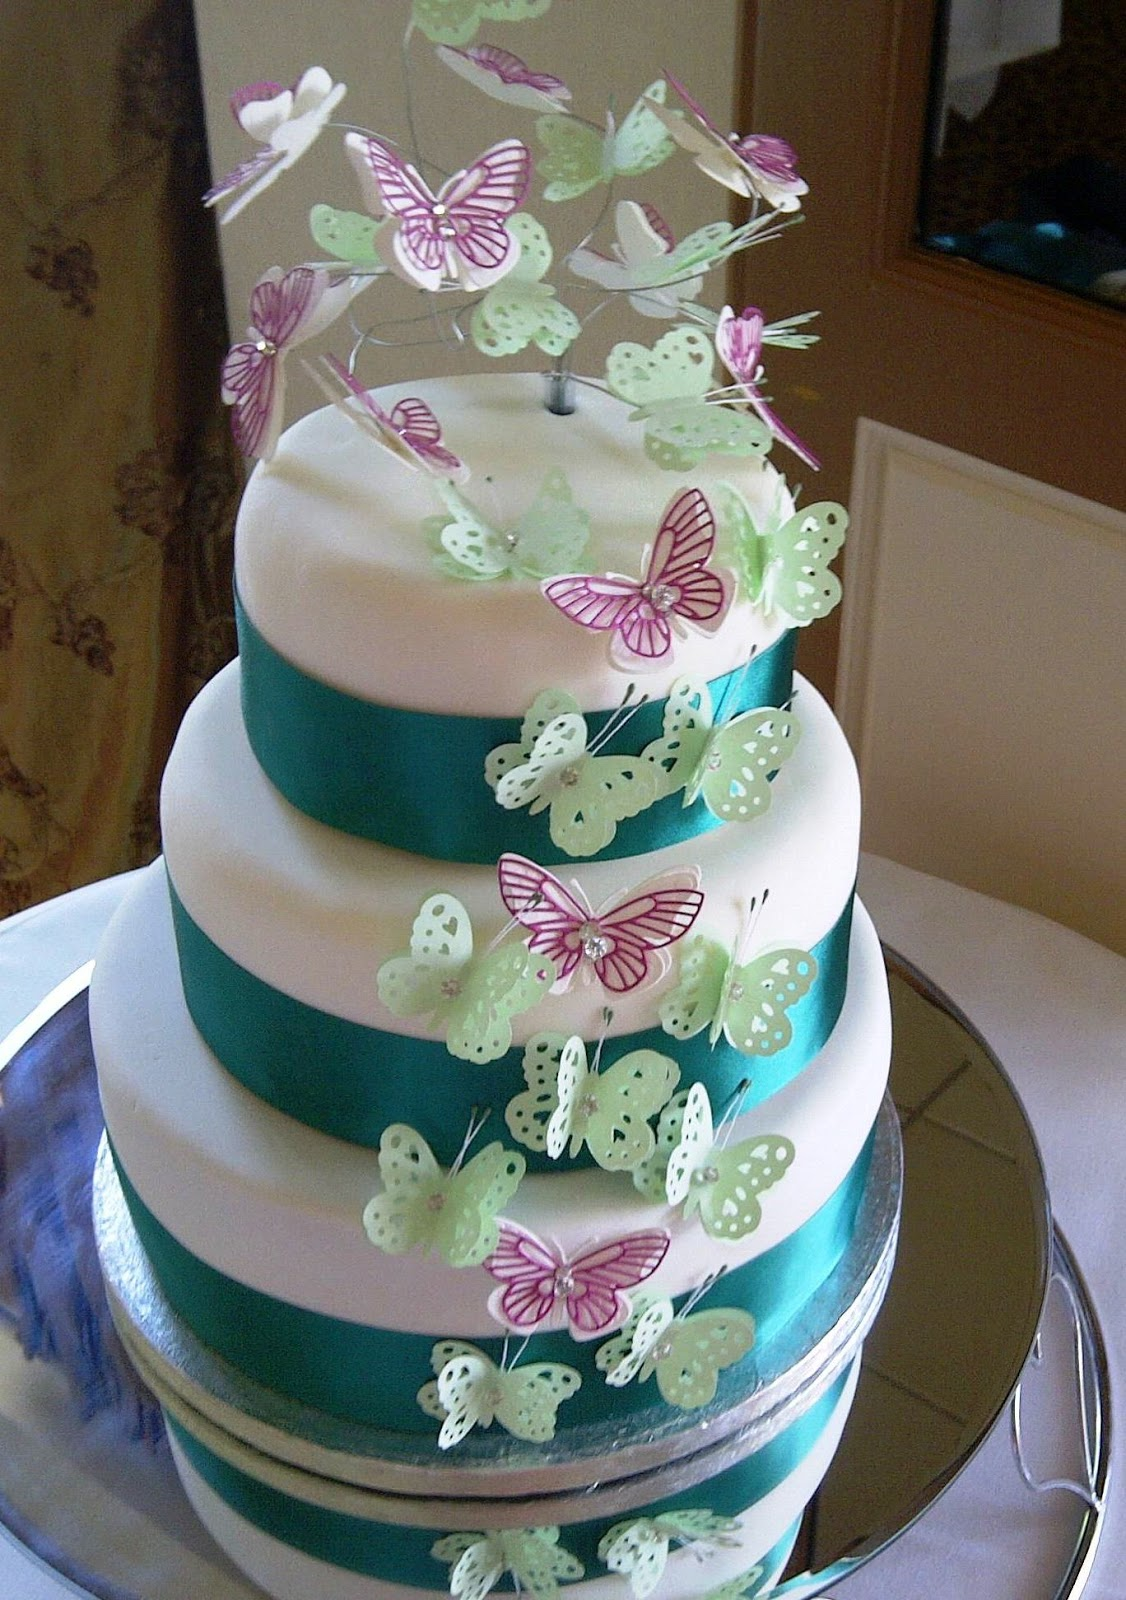 How To Stack A Wedding Cake Without Dowels